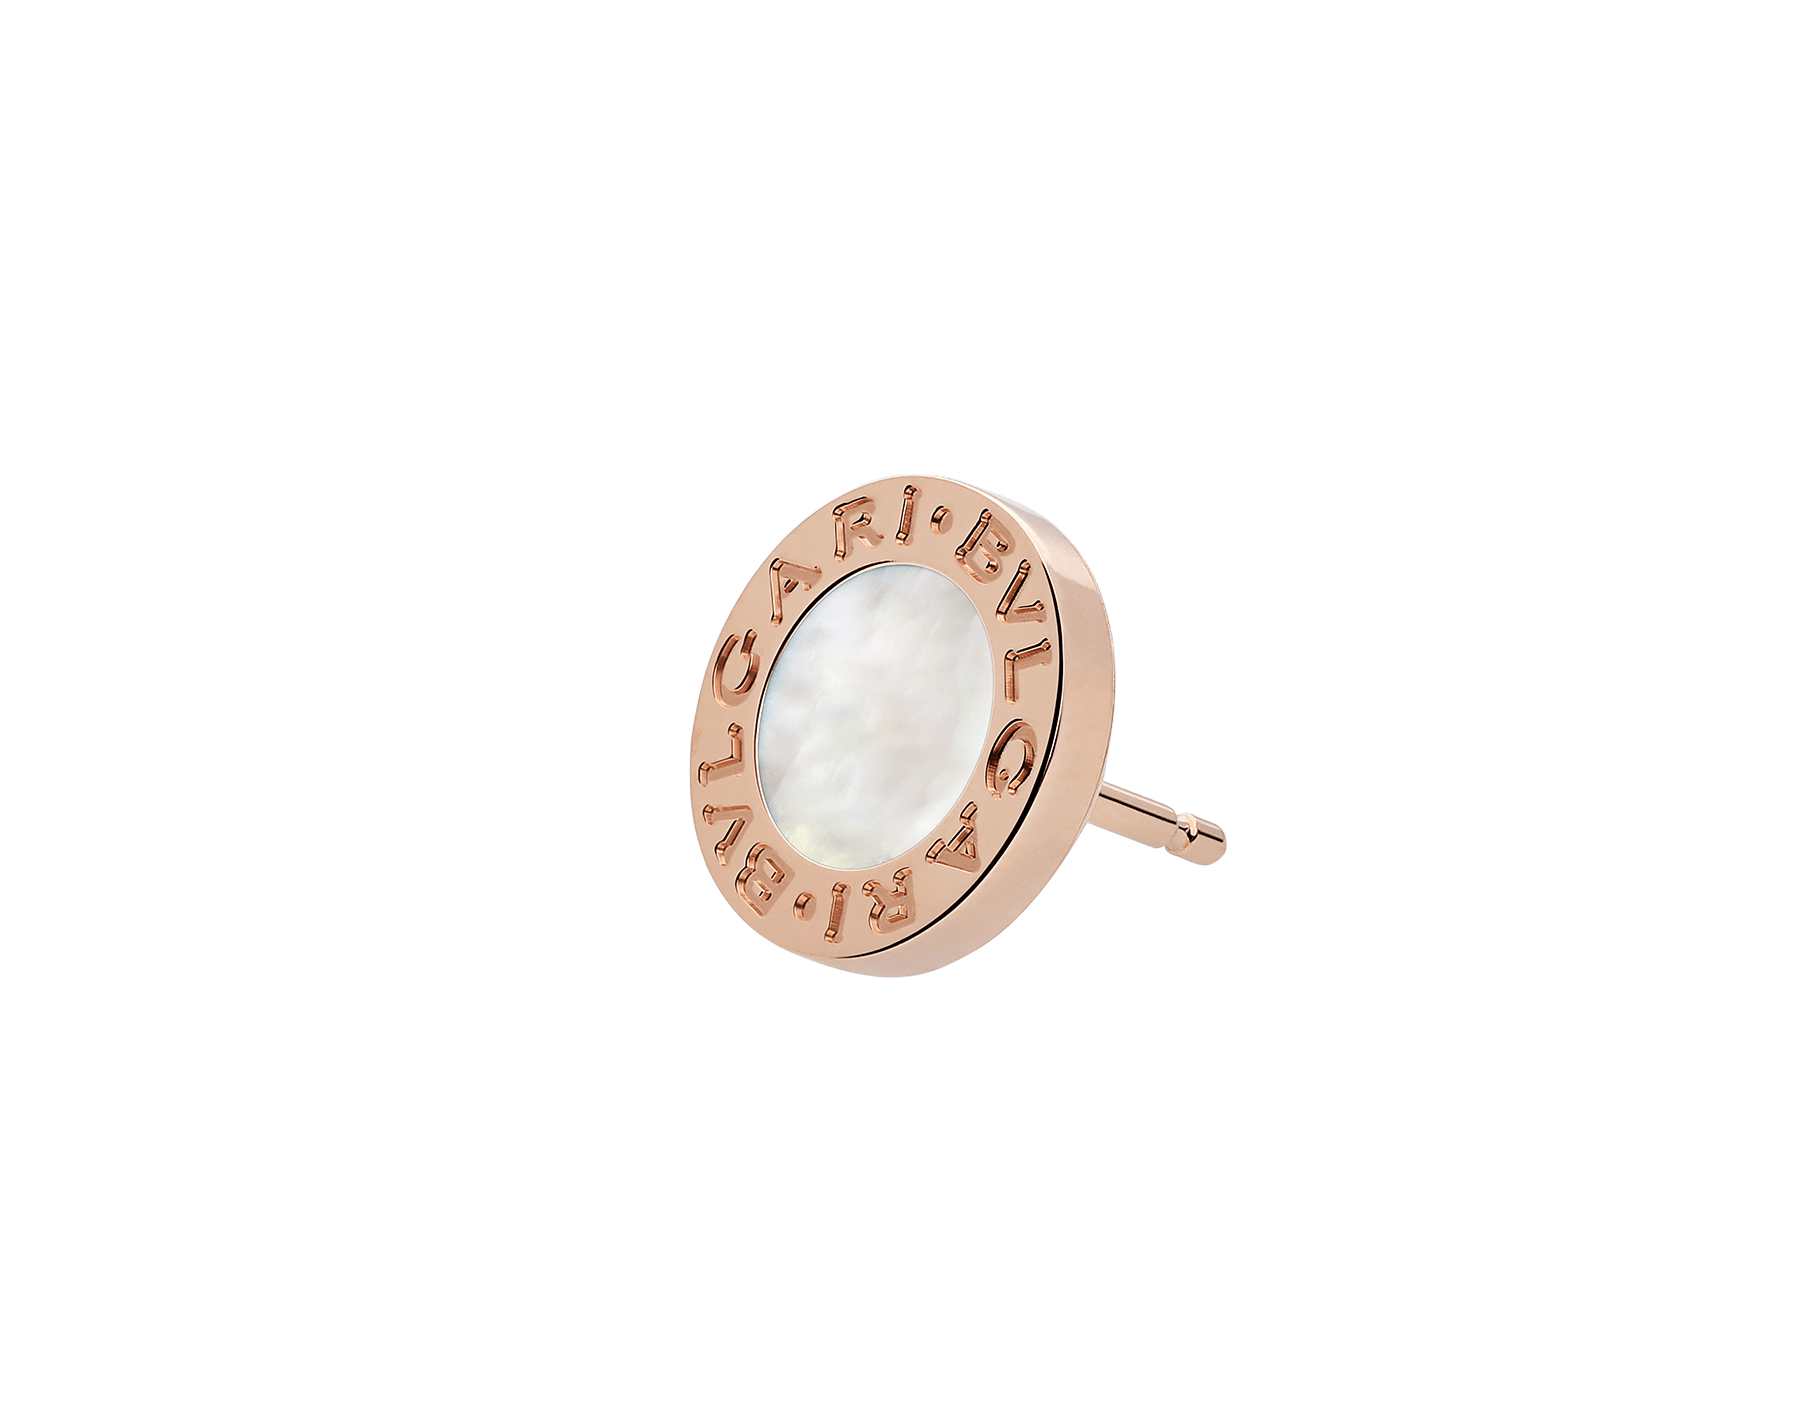 BVLGARI BVLGARI 18 kt rose gold single stud earring with mother-of-pearl 354732 image 2